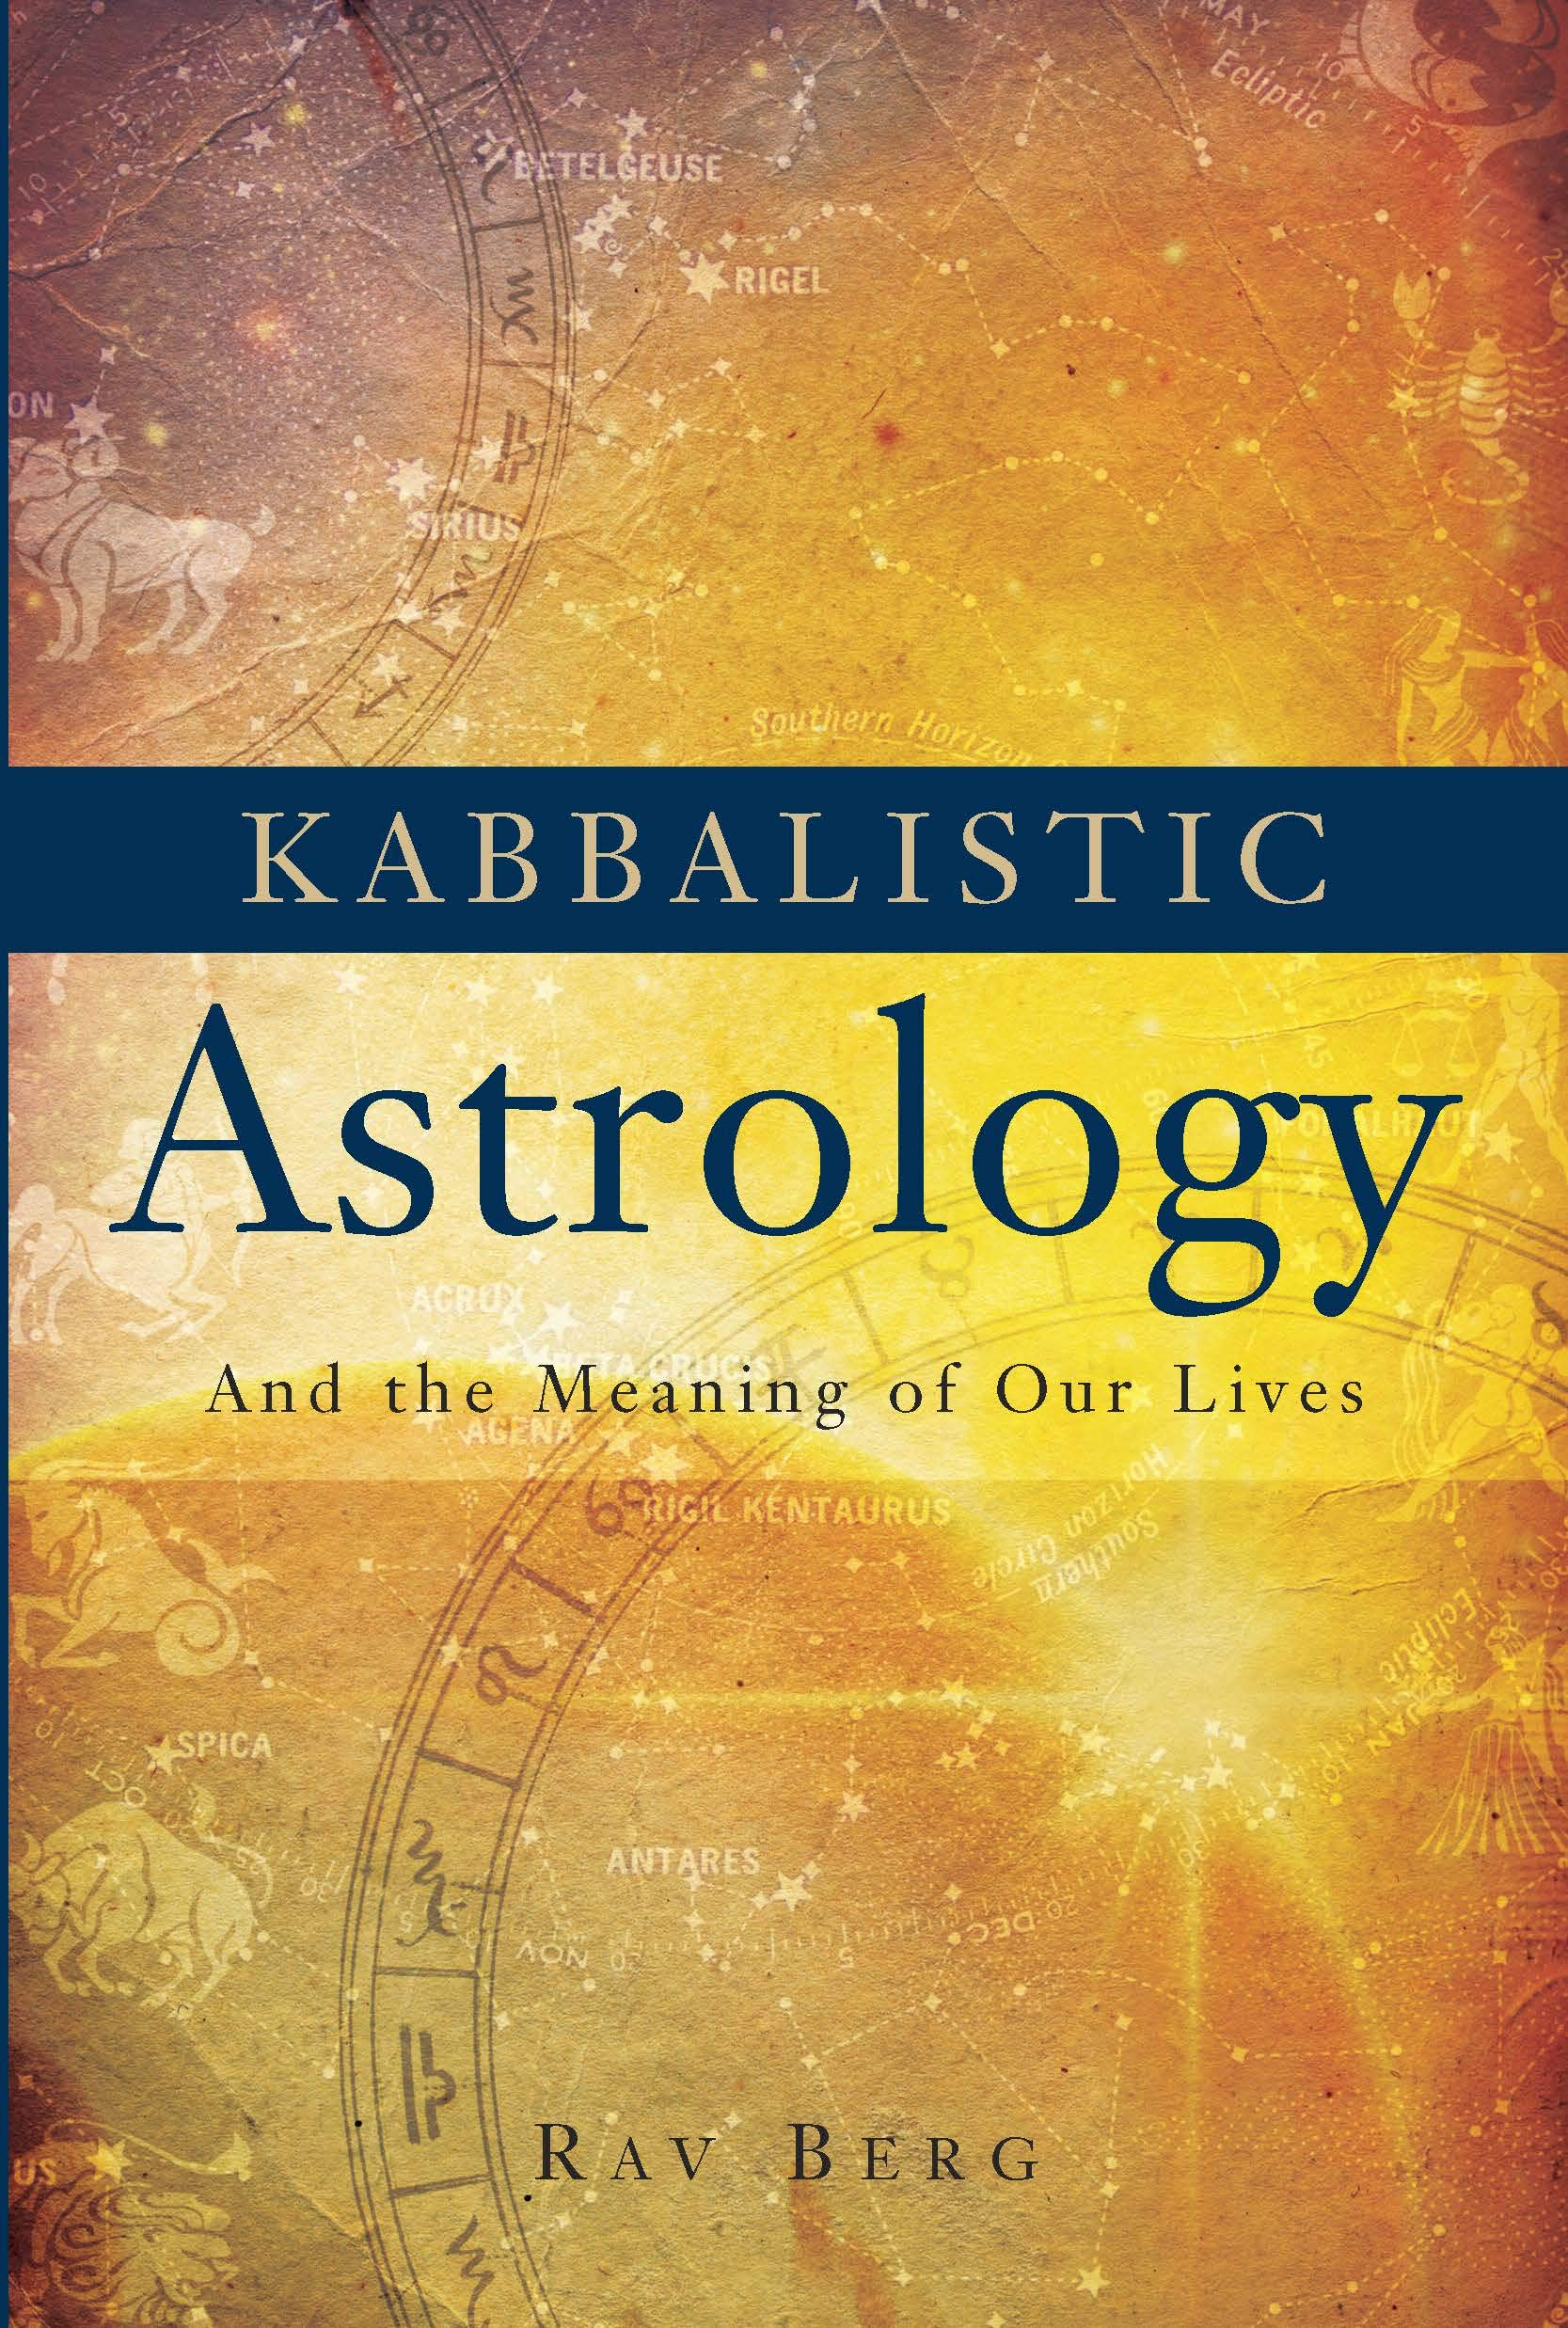 kabbalah astrology pdf